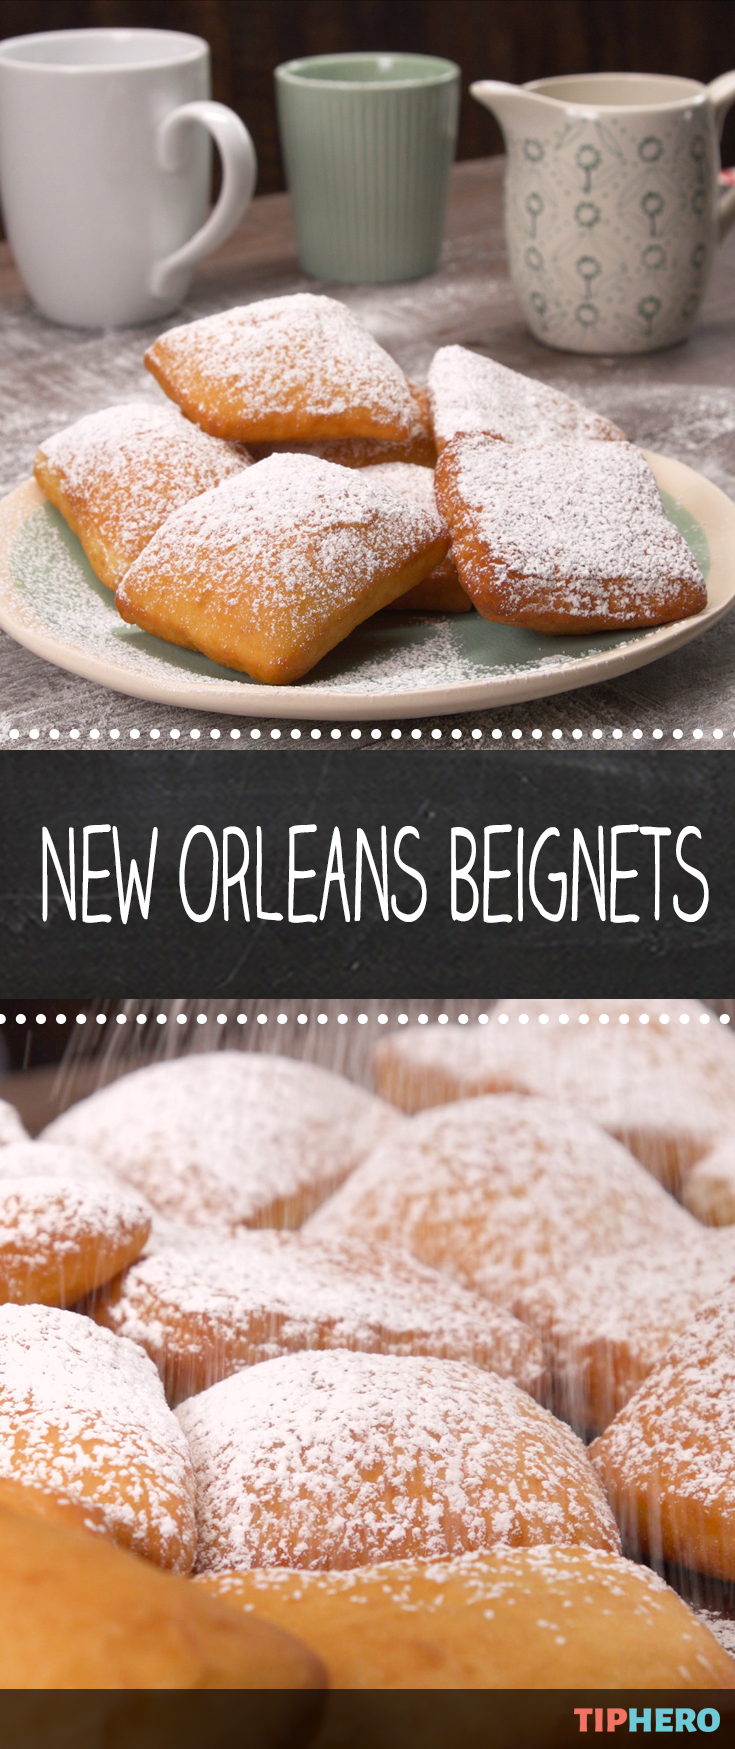 Photo of New Orleans Beignets We'll show you how to make pillowy, powdered sugar-covered …